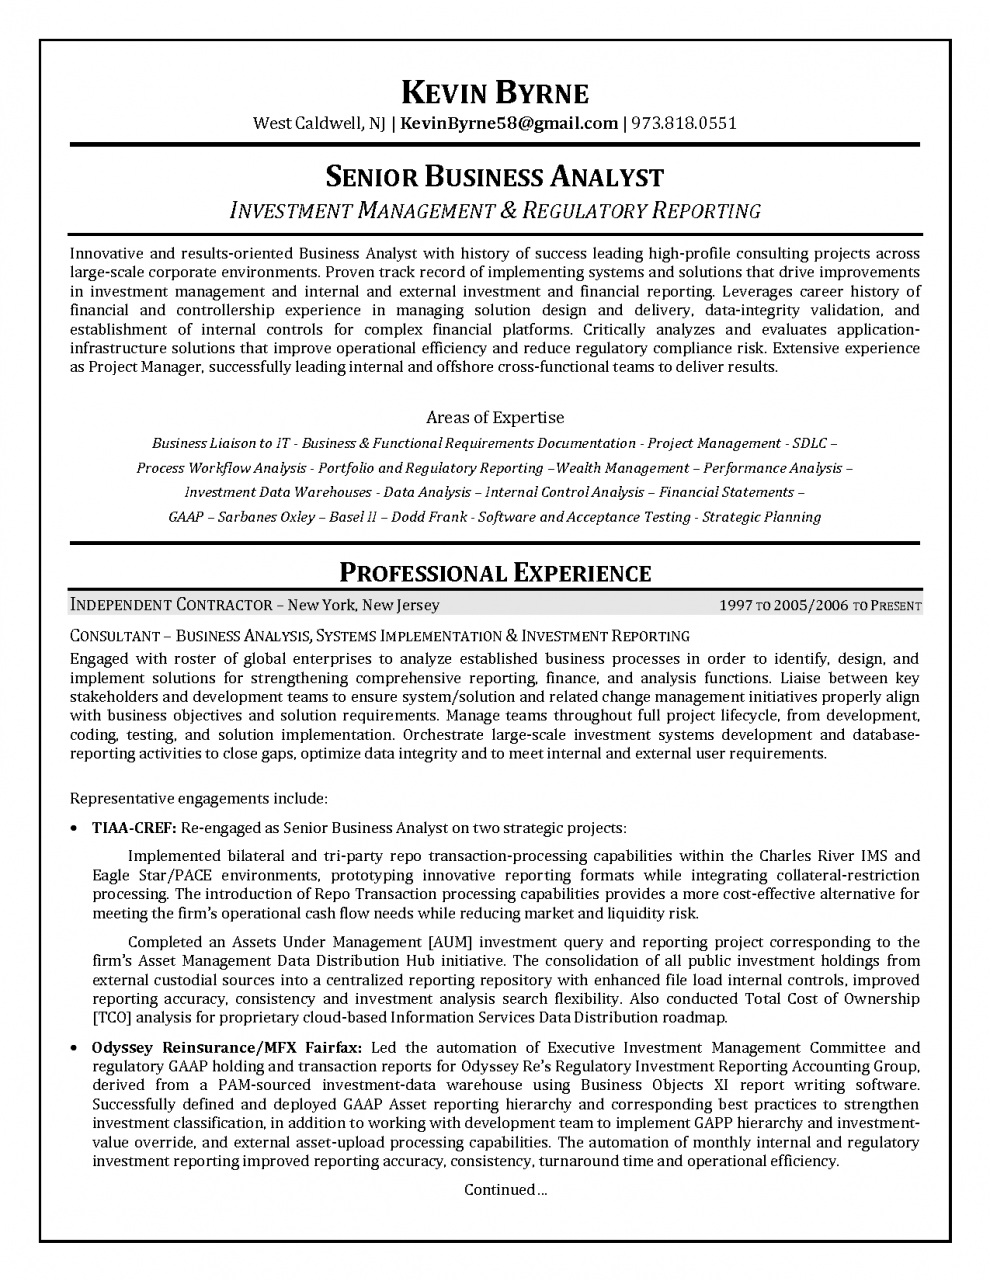 senior business analyst resume format business analyst senior resume workbloom 135933271 sample resume for business objects resume business analyst resume